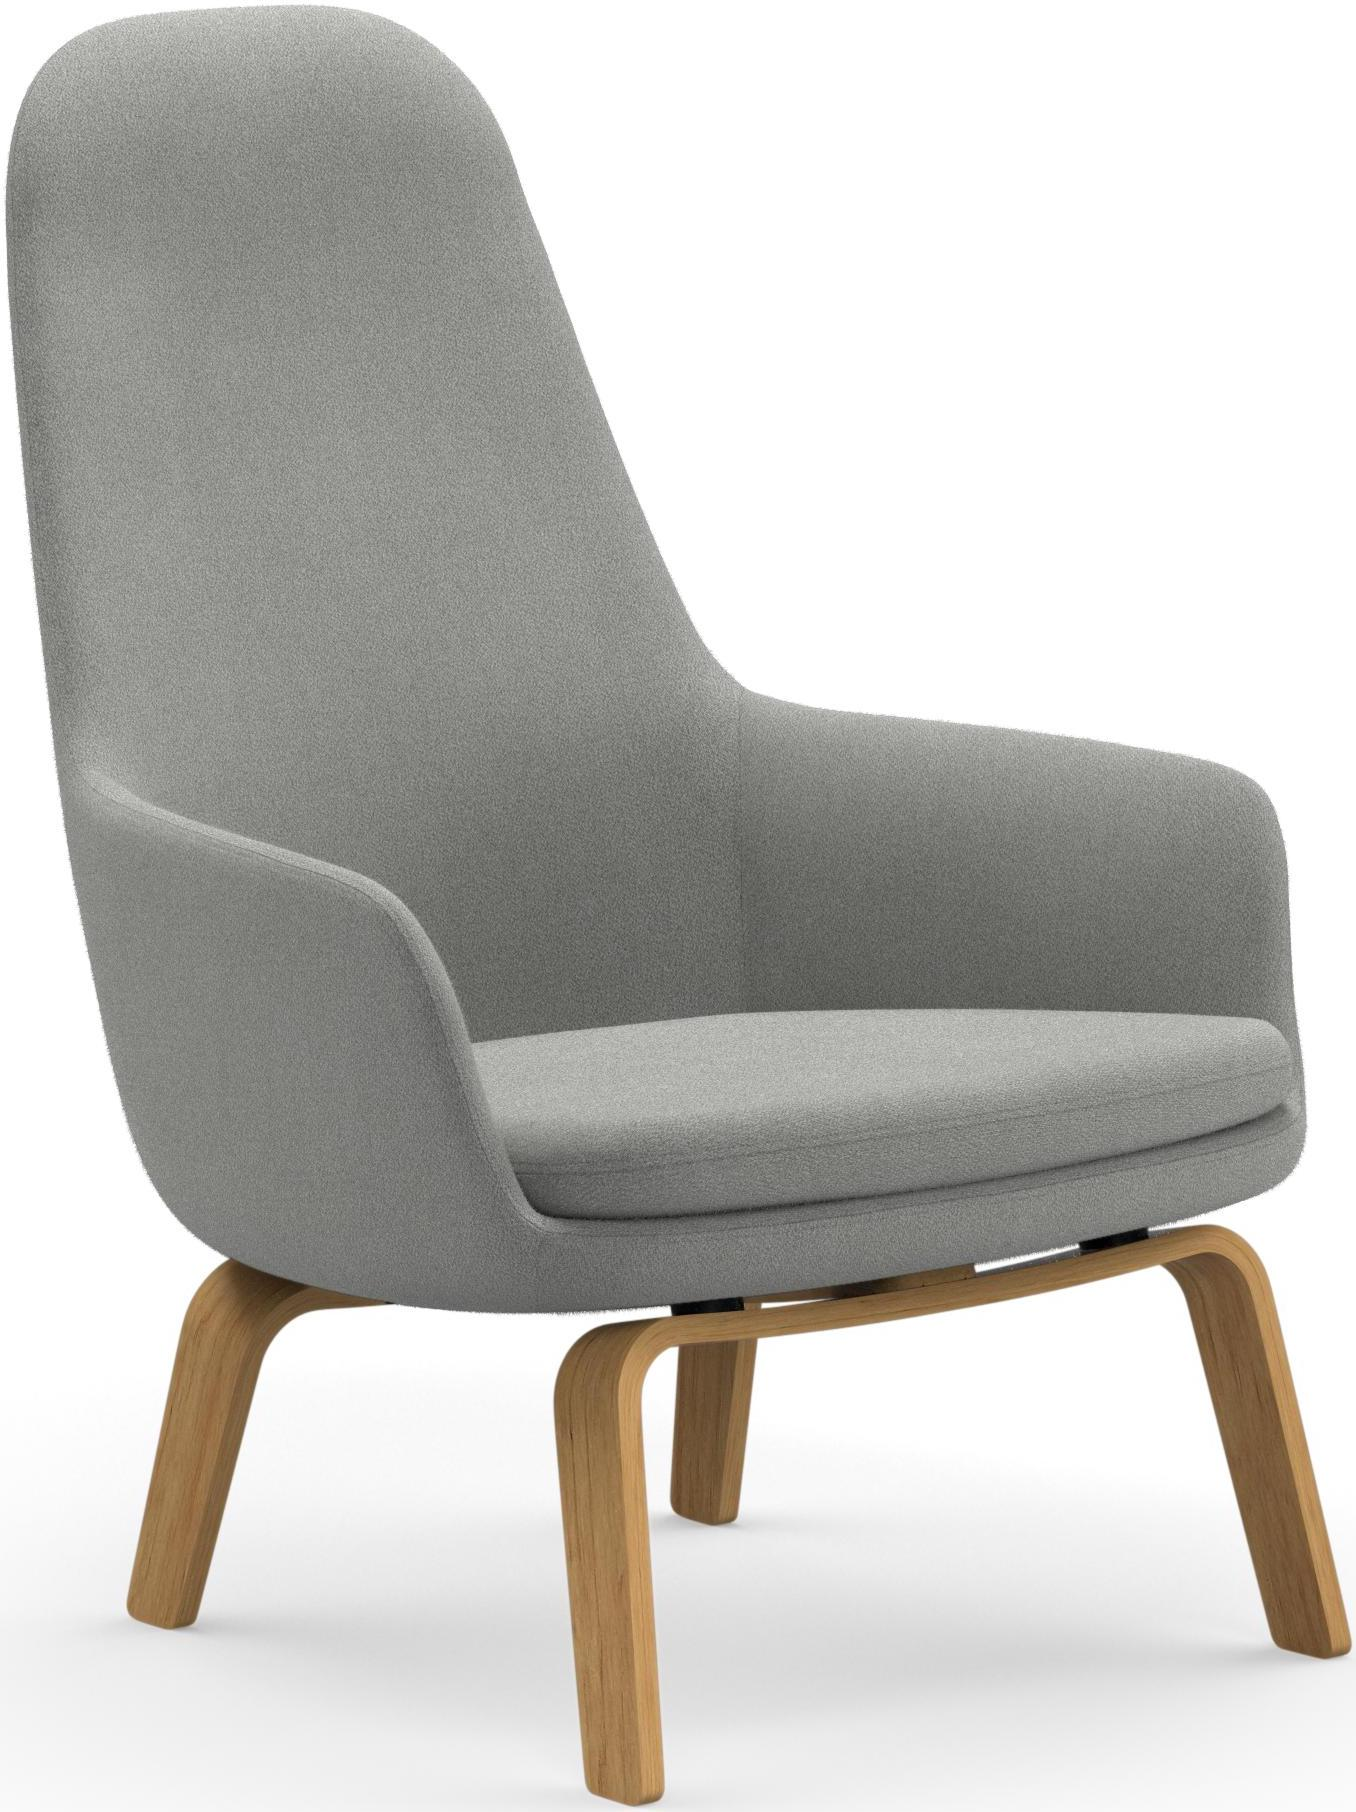 Normann copenhagen fauteuil era dossier haut pi tement for Scandic design